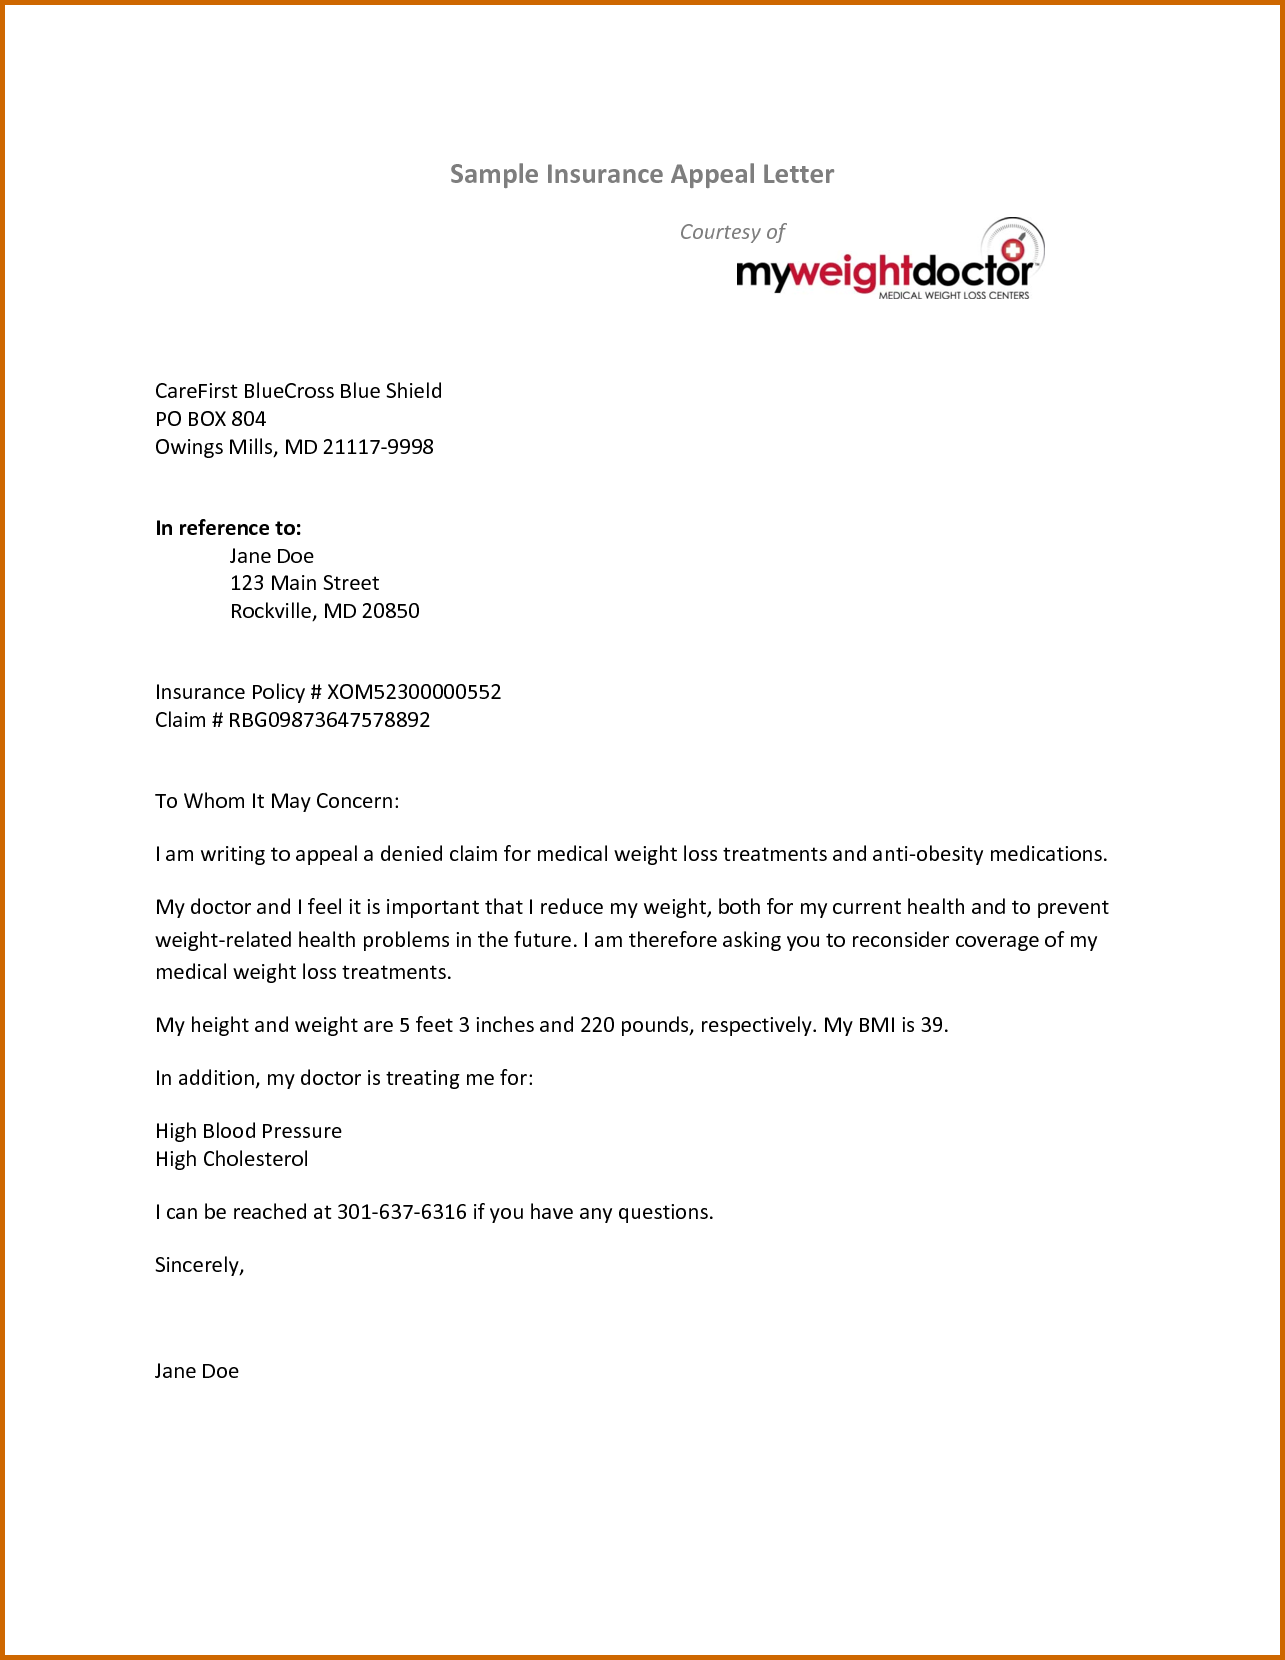 Sample Claim Letter Insurance Company Denial Business Appeal